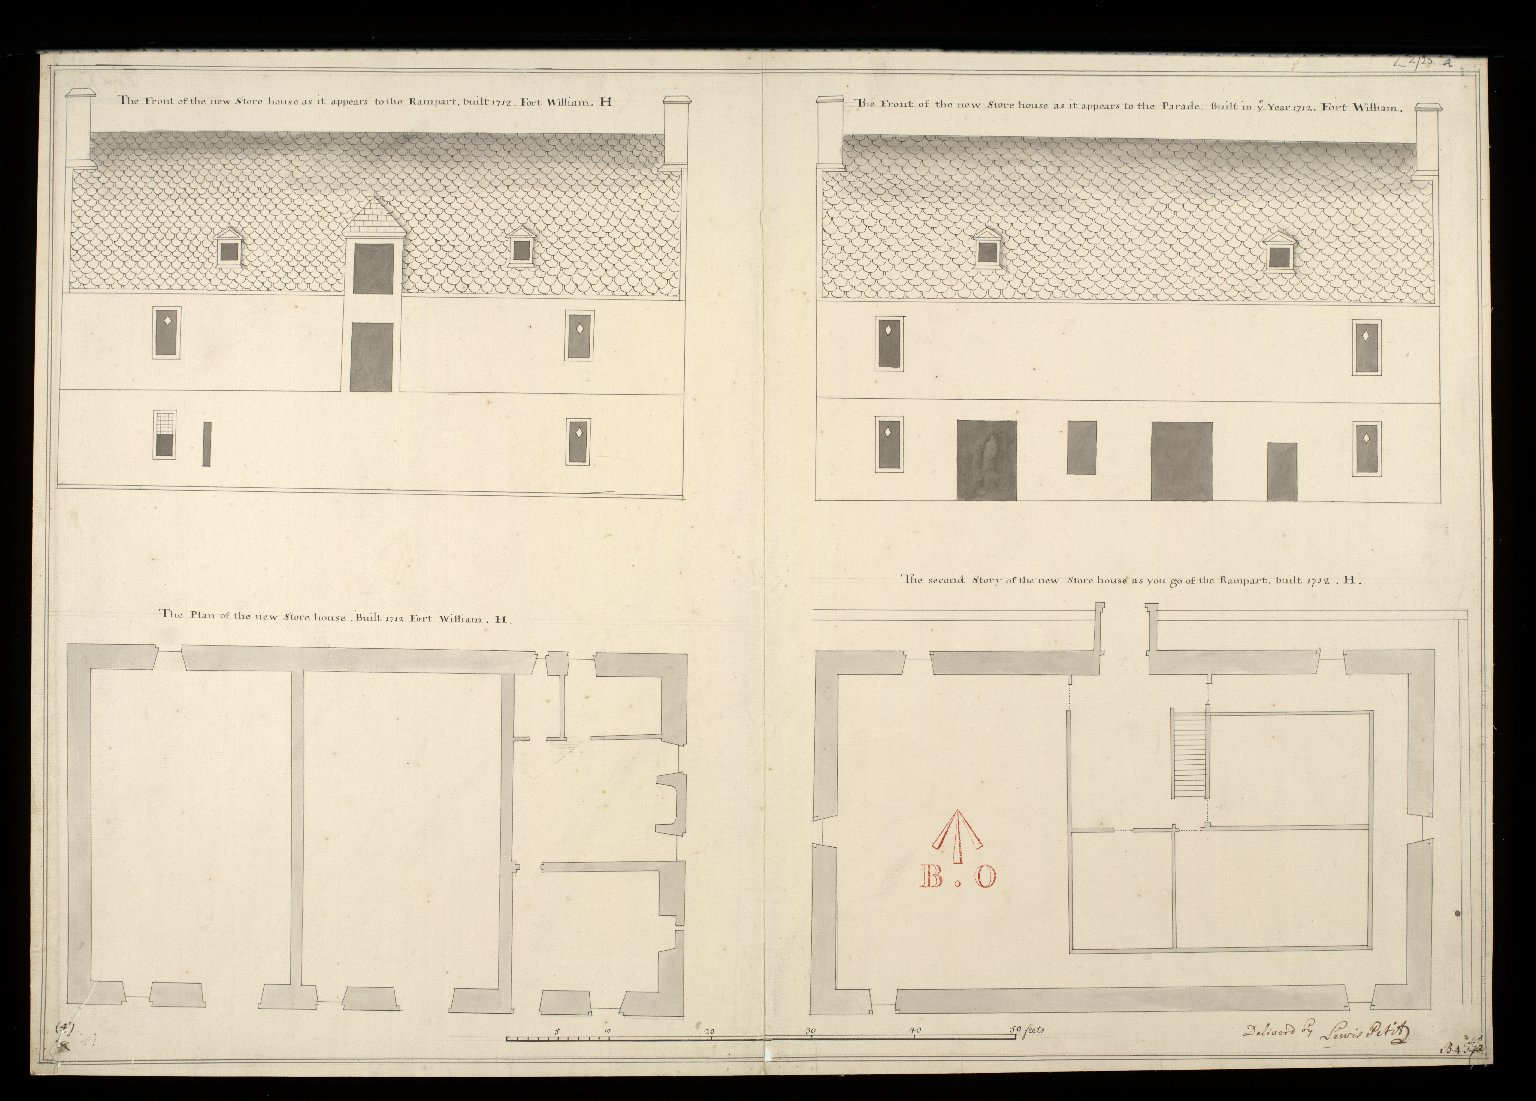 [Plan of store house, Fort William] : The front of the new store house as it appears to the rampart, built 1712, Fort William, H [...] [1 of 1]